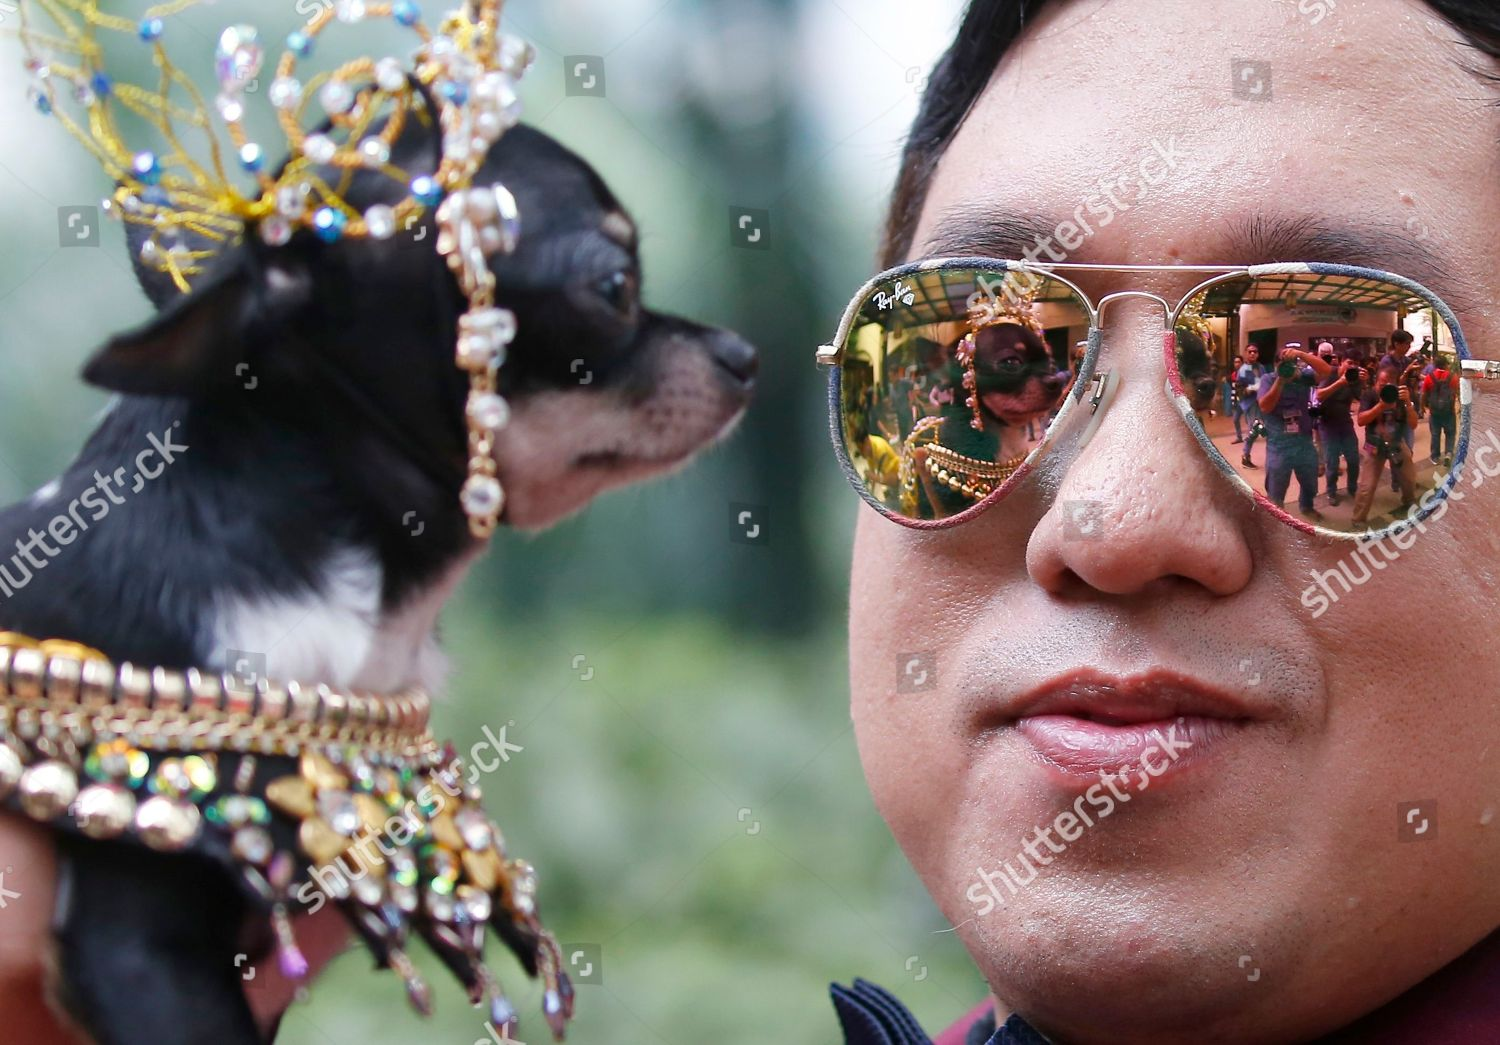 71a25b062b35 Pets Tribute, Quezon, Philippines Stock Image by Bullit Marquez for  editorial use, Oct 3, 2018